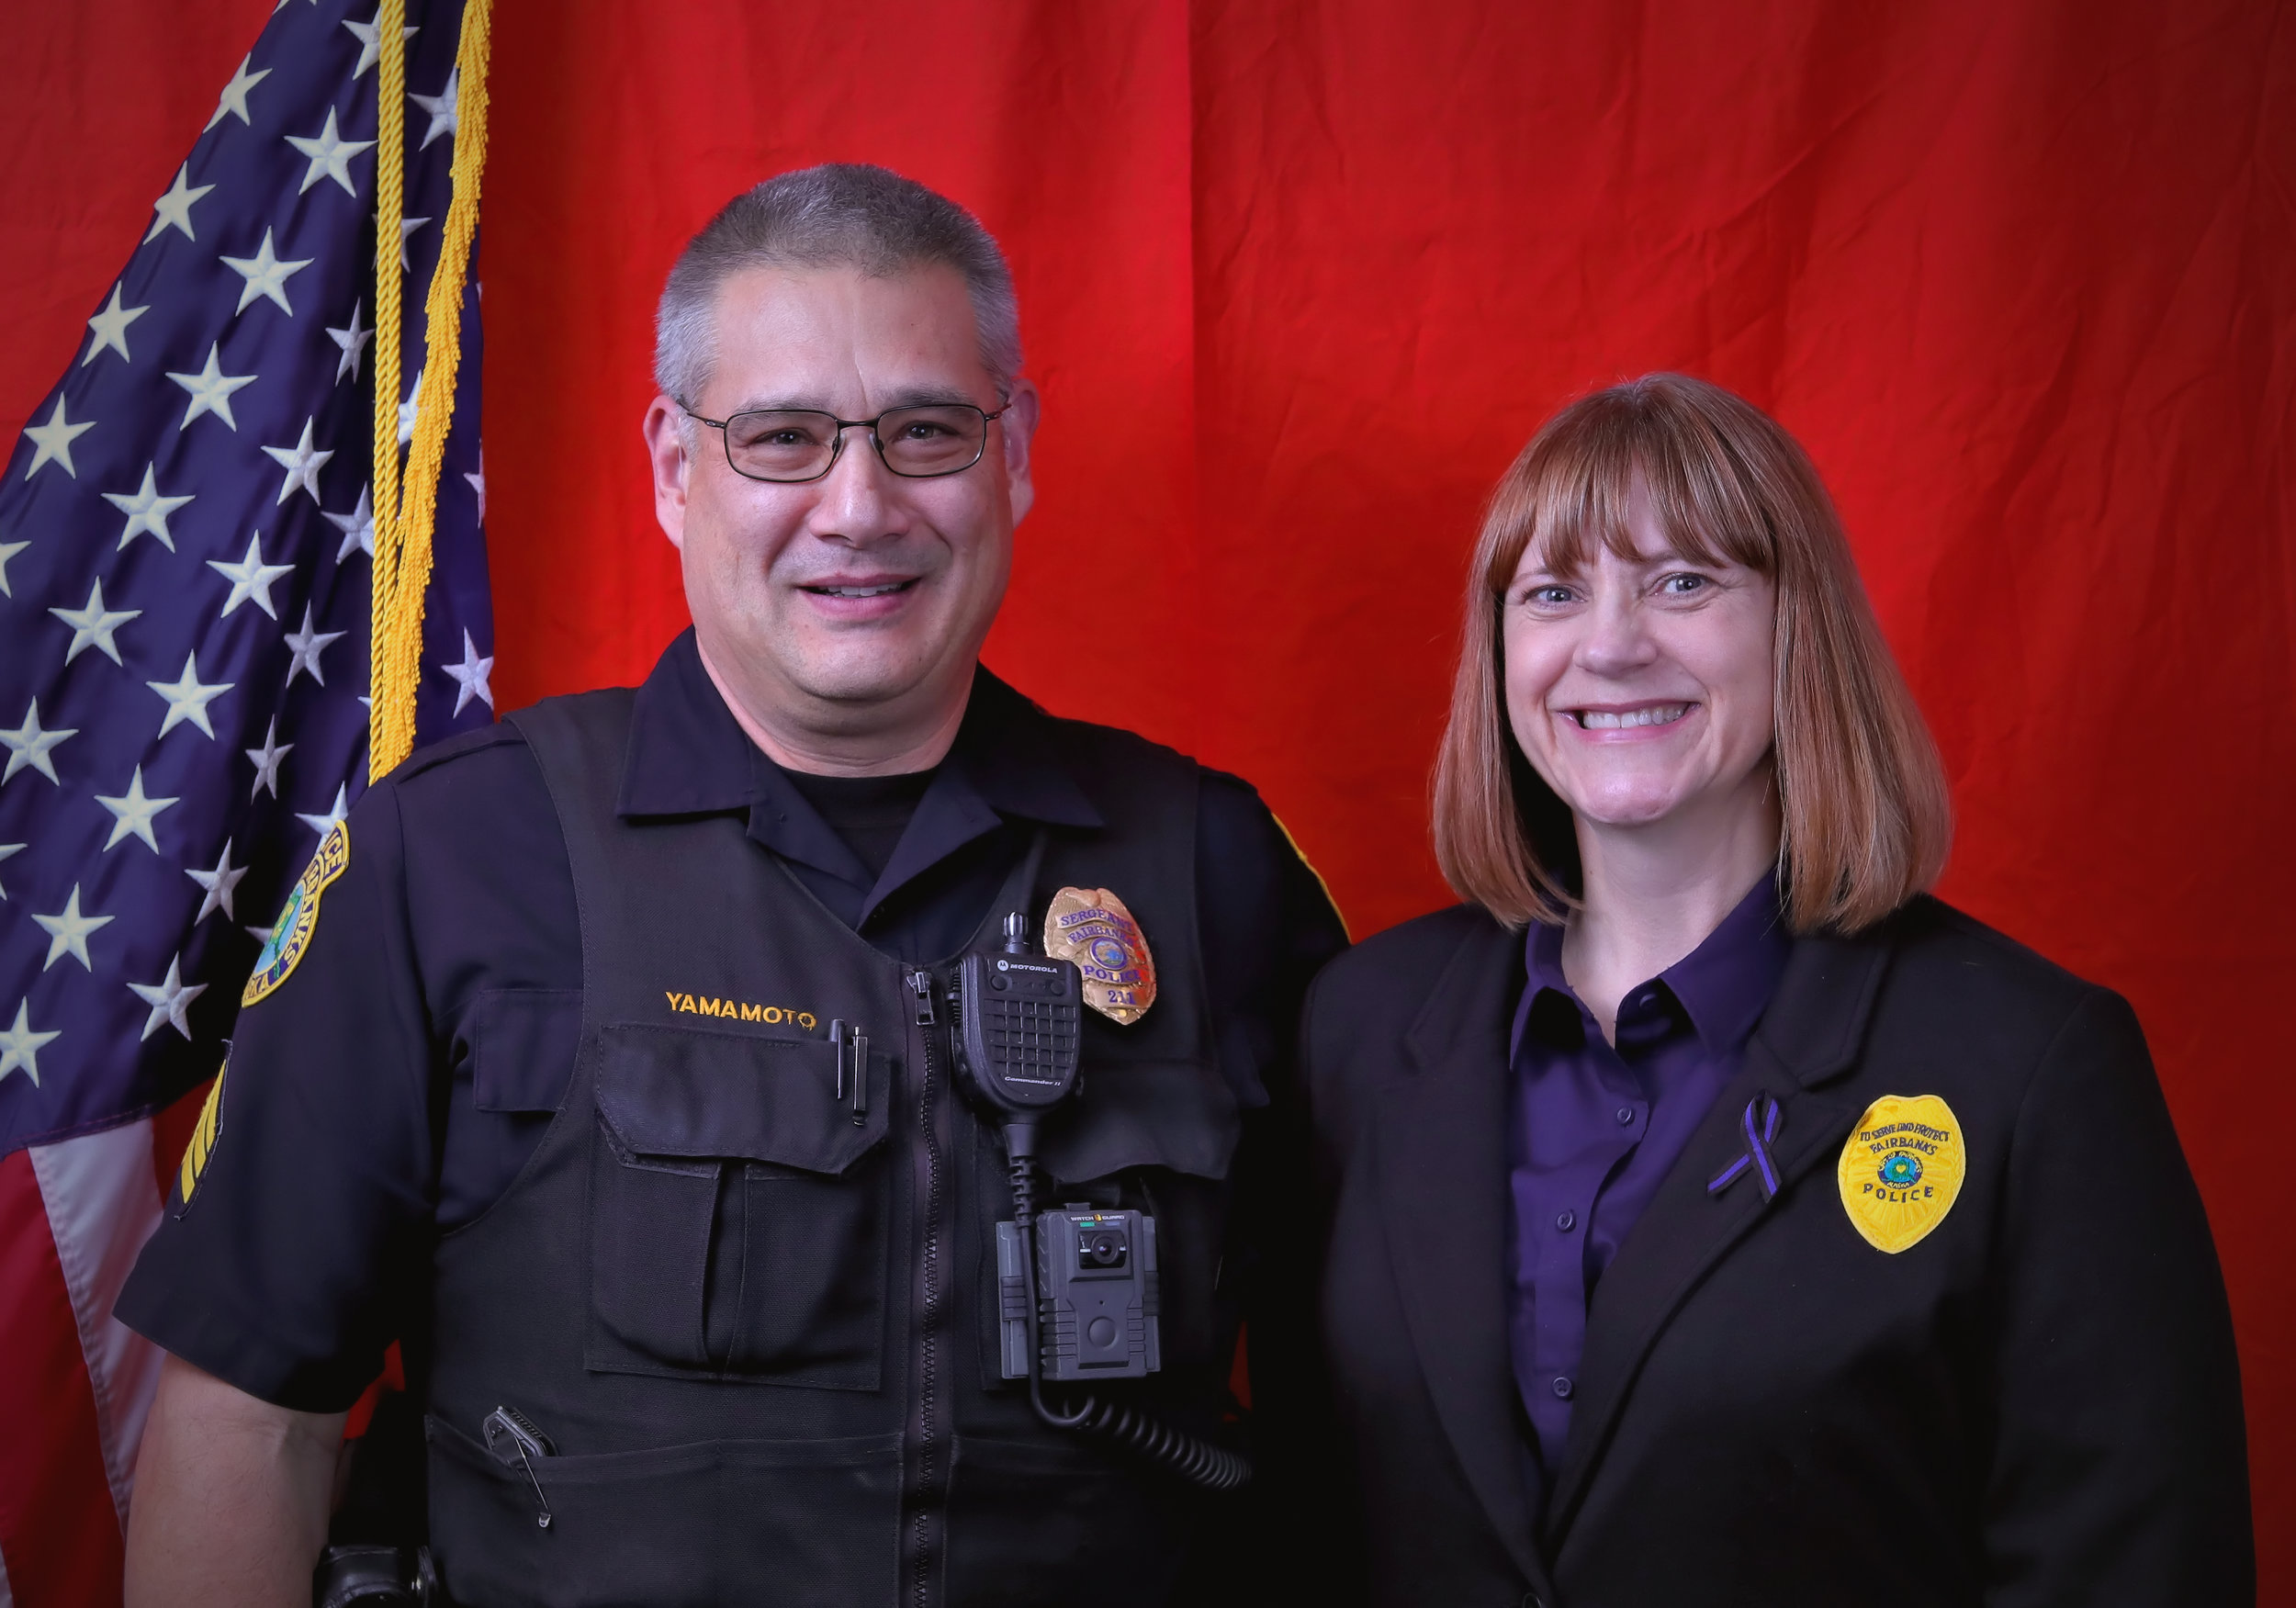 Sergeant Gary Yamamoto Community Outreach Award     Fairbanks Police Department    Gary Yamamoto is an exemplary police officer recognized by community members for treating homeless people with dignity and respect. On a day in December, a community member had to call the police because they were faced with a distraught individual who reported that she was suicidal. Sgt. Yamamoto came and was kind and calm in addressing the woman, even though she was quite hysterical. He had a lot of patience and exhibited great skill in de-escalating the situation while gently explaining that he had to do a patdown and other normal police procedures. He was not only very professional, but also kind. When the individual ran off towards an unsafe area, Sgt. Yamamoto was able to quickly apprehend her and remove her from the scene. This may have been an ordinary task to him, but the compassion with which he treated this homeless woman was just one example of his professionalism. Fairbanks residents can feel at ease knowing that Gary is a part of this community as a police officer.